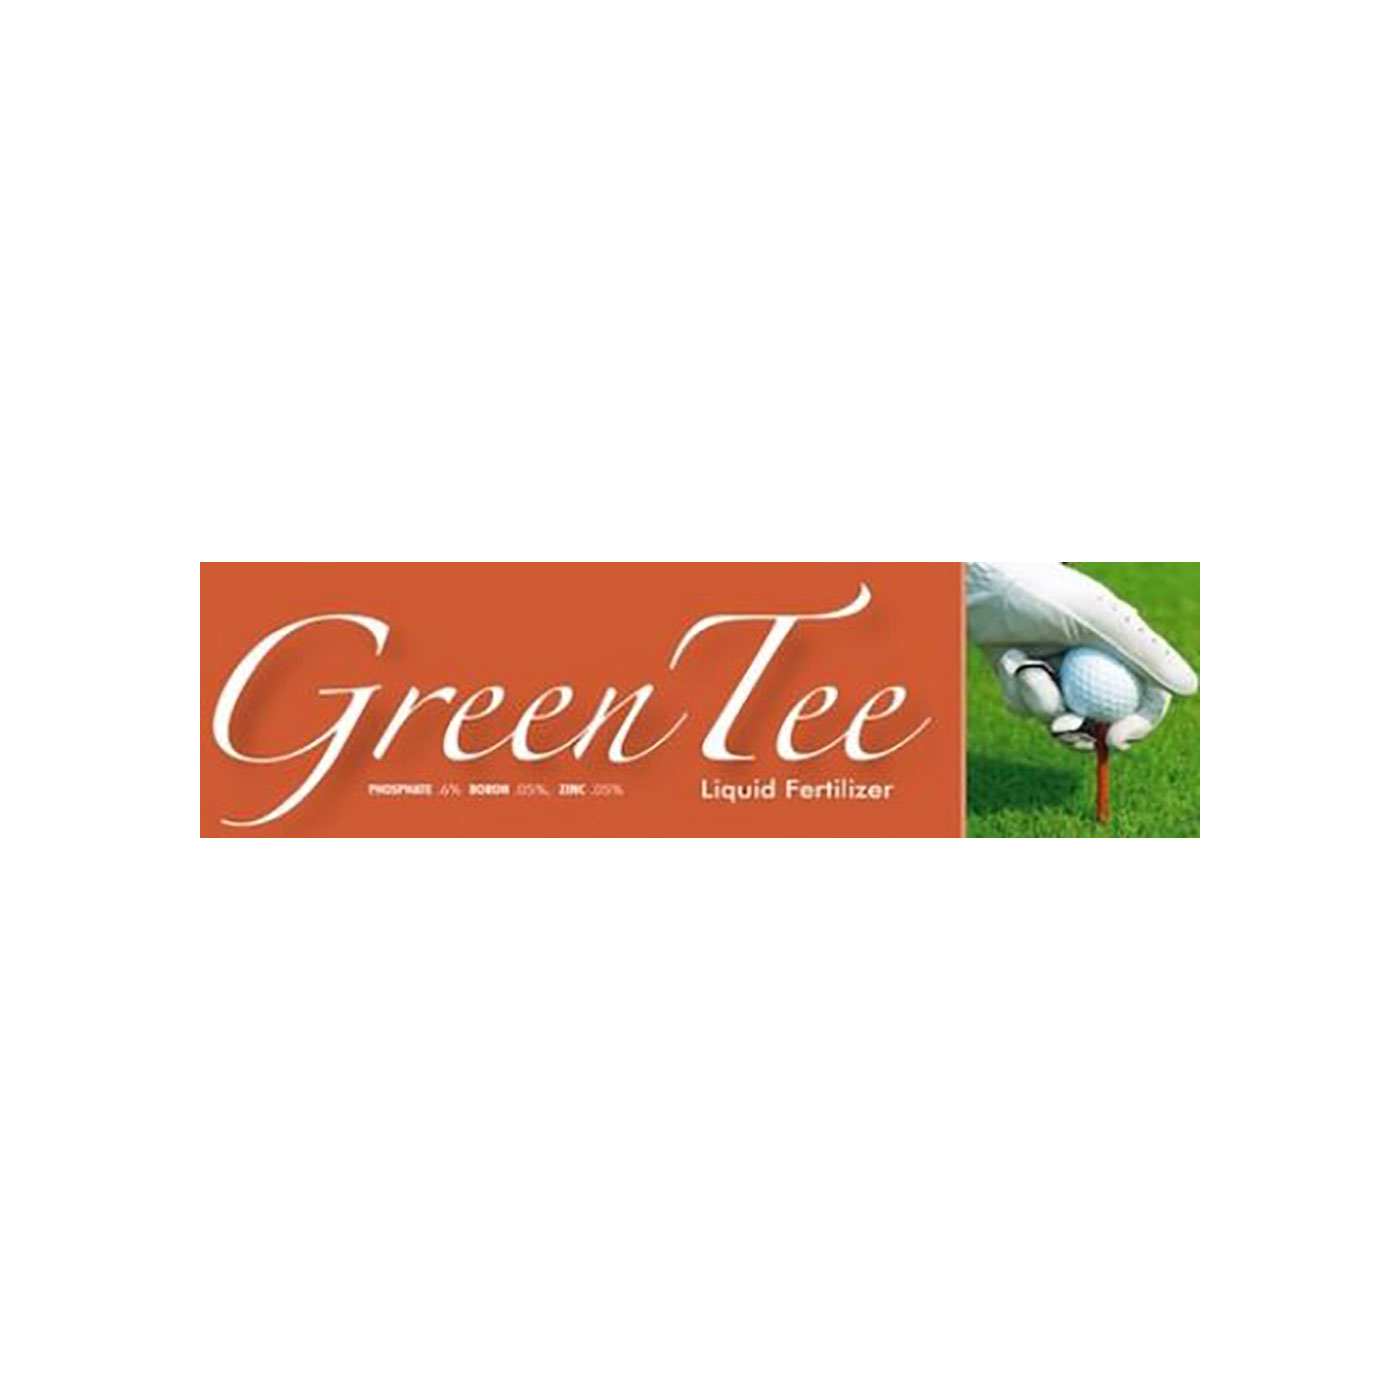 Green Tee Liquid Fertilizer